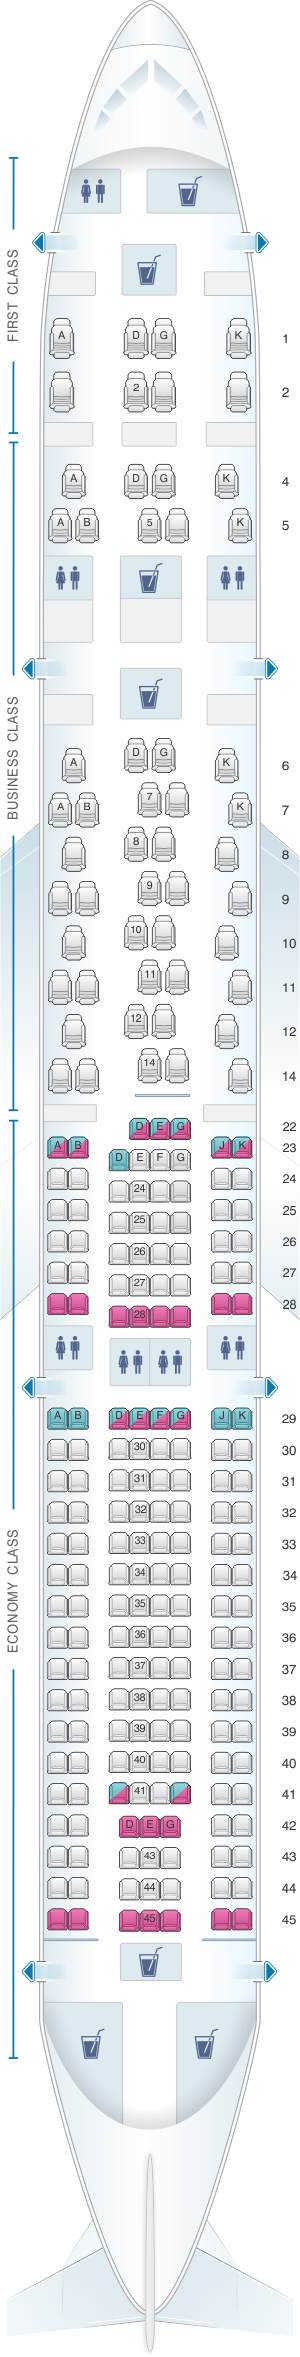 Seat map for SWISS Airbus A330 300